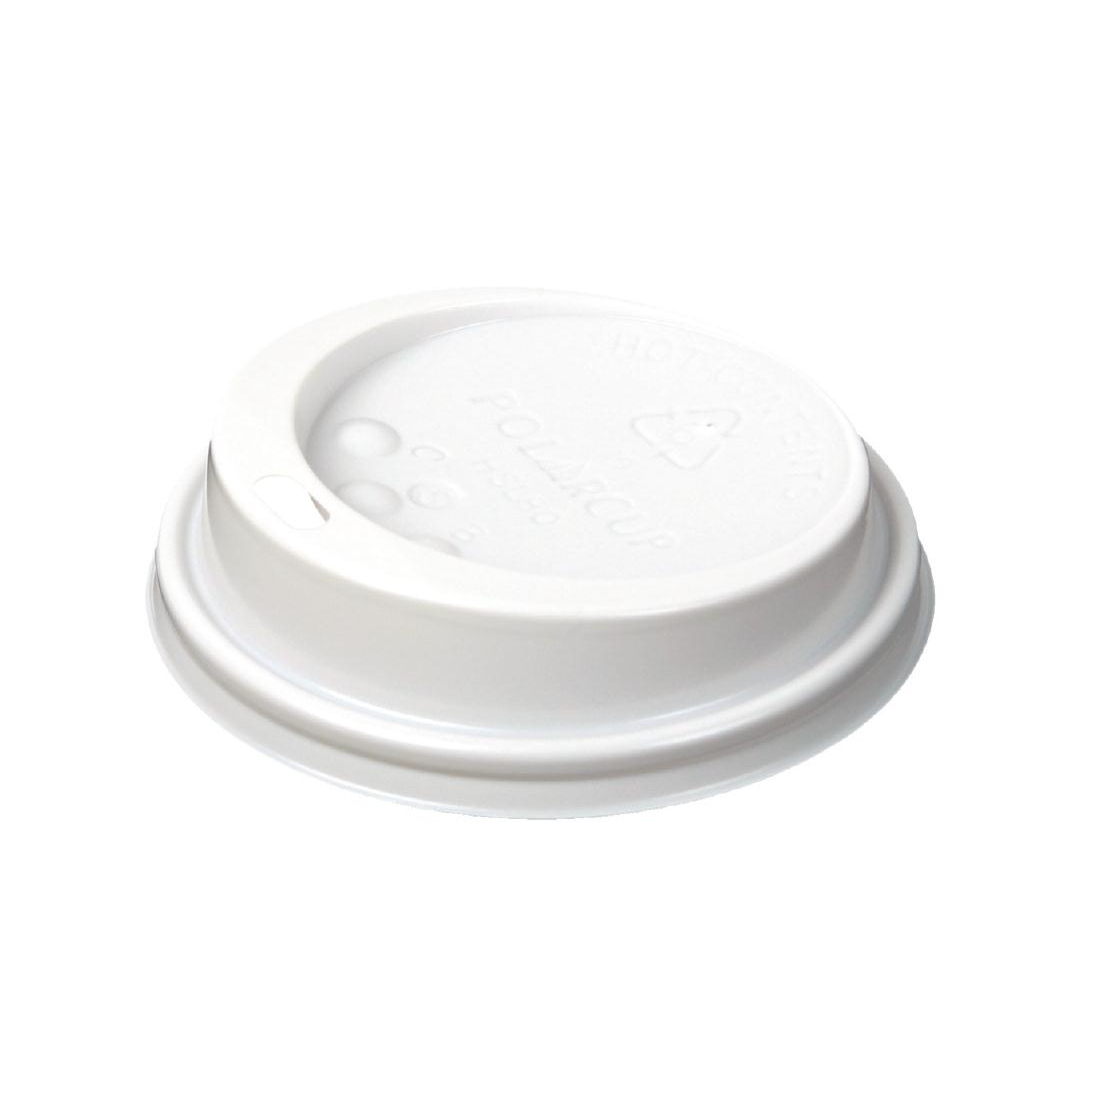 Huhtamaki Hot Cup Lid to fit 8 / 9oz White